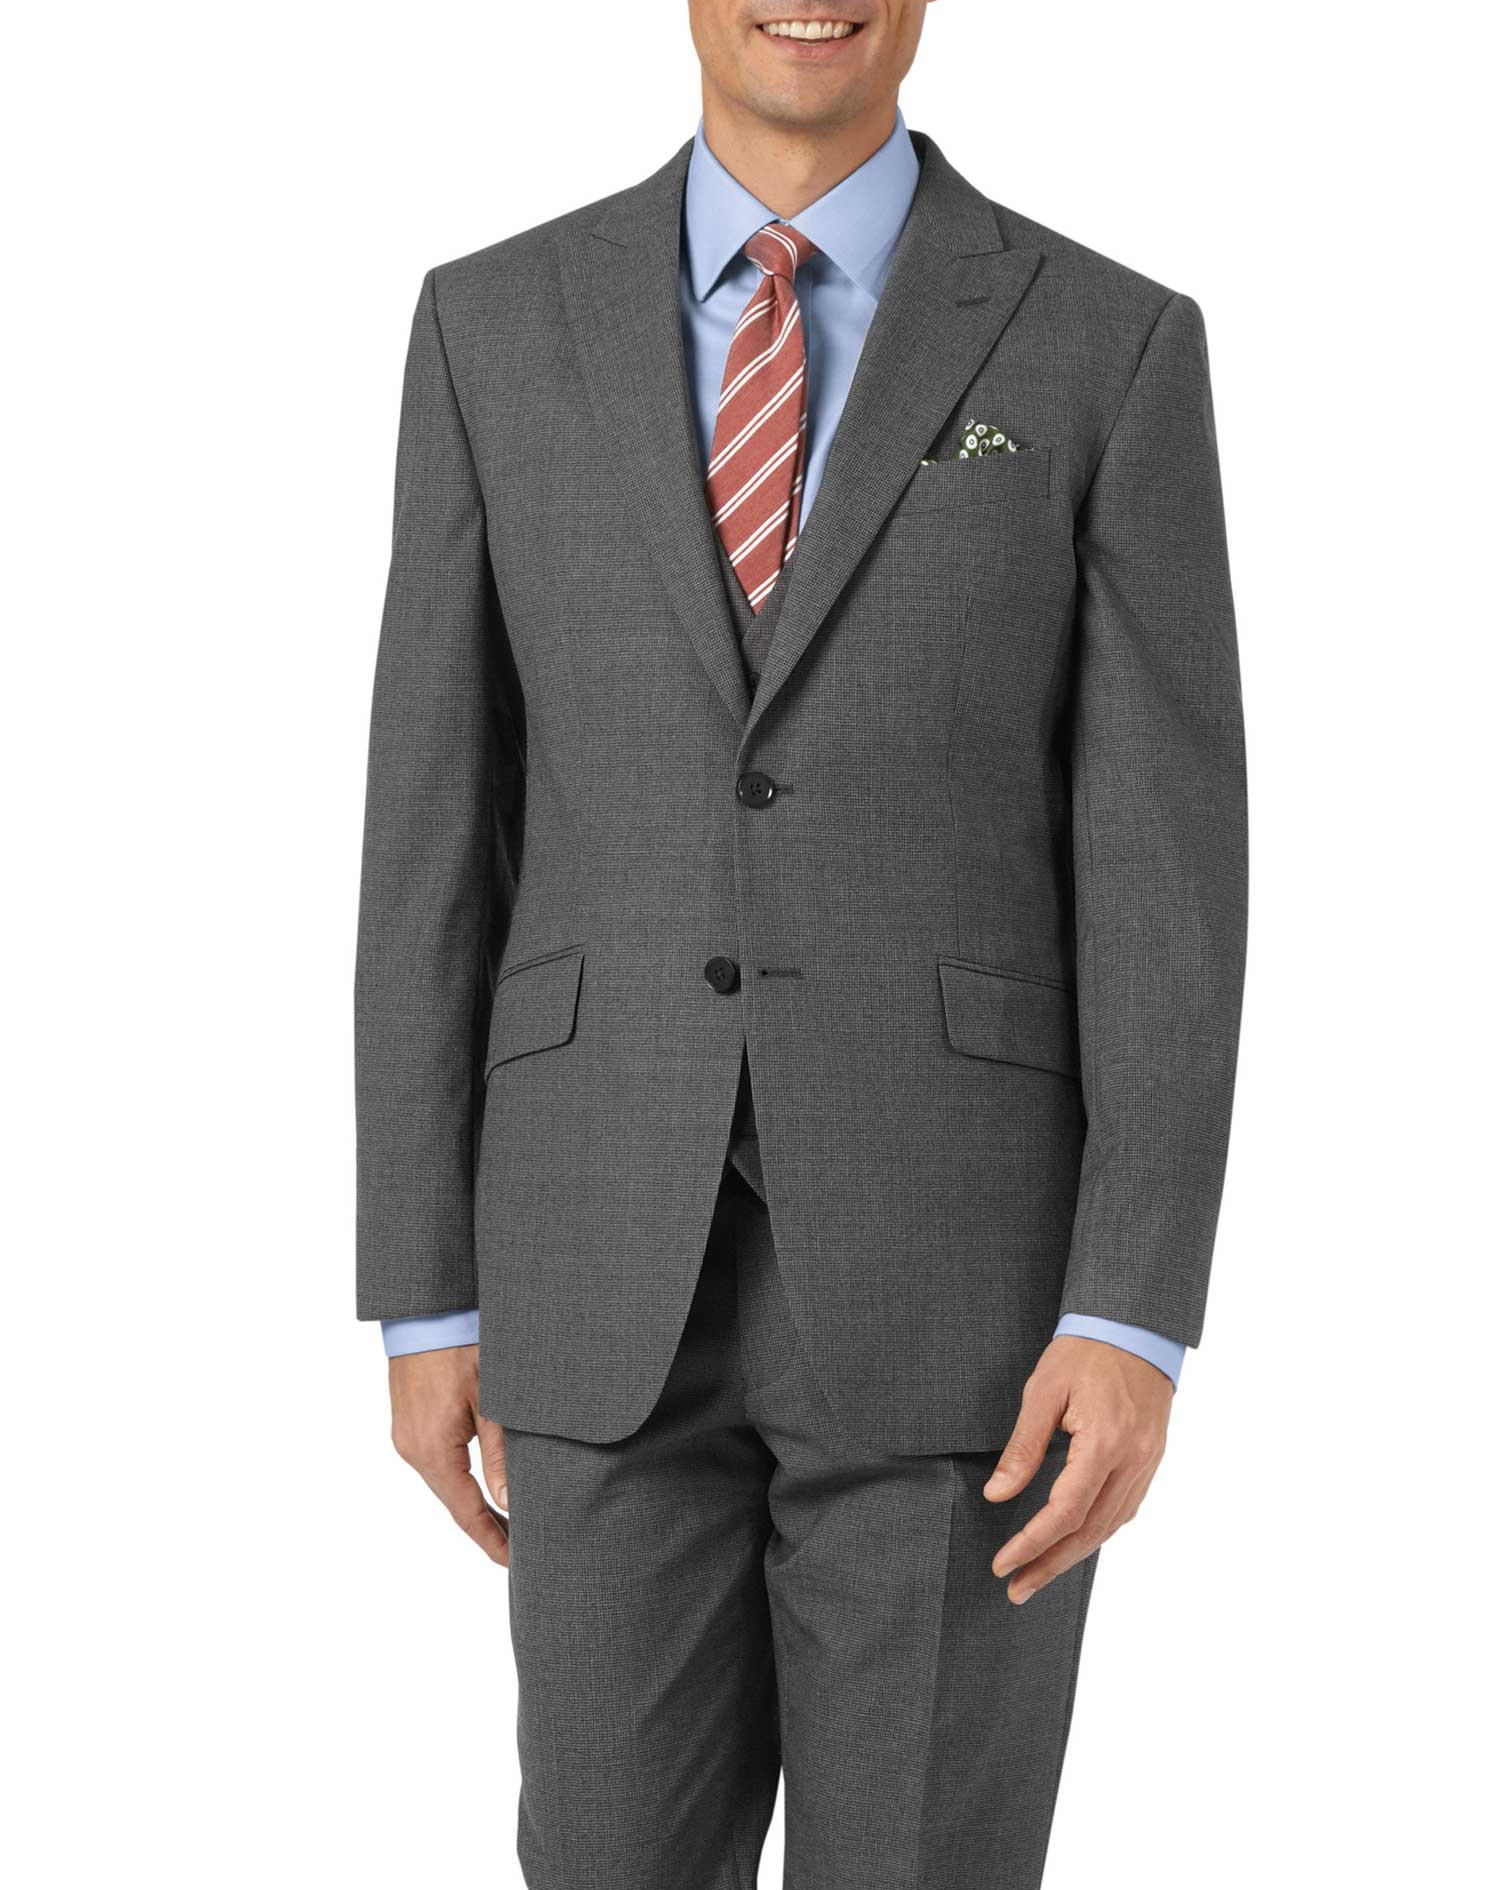 Charcoal Slim Fit Panama Puppytooth Business Suit Wool Jacket Size 38 Long by Charles Tyrwhitt